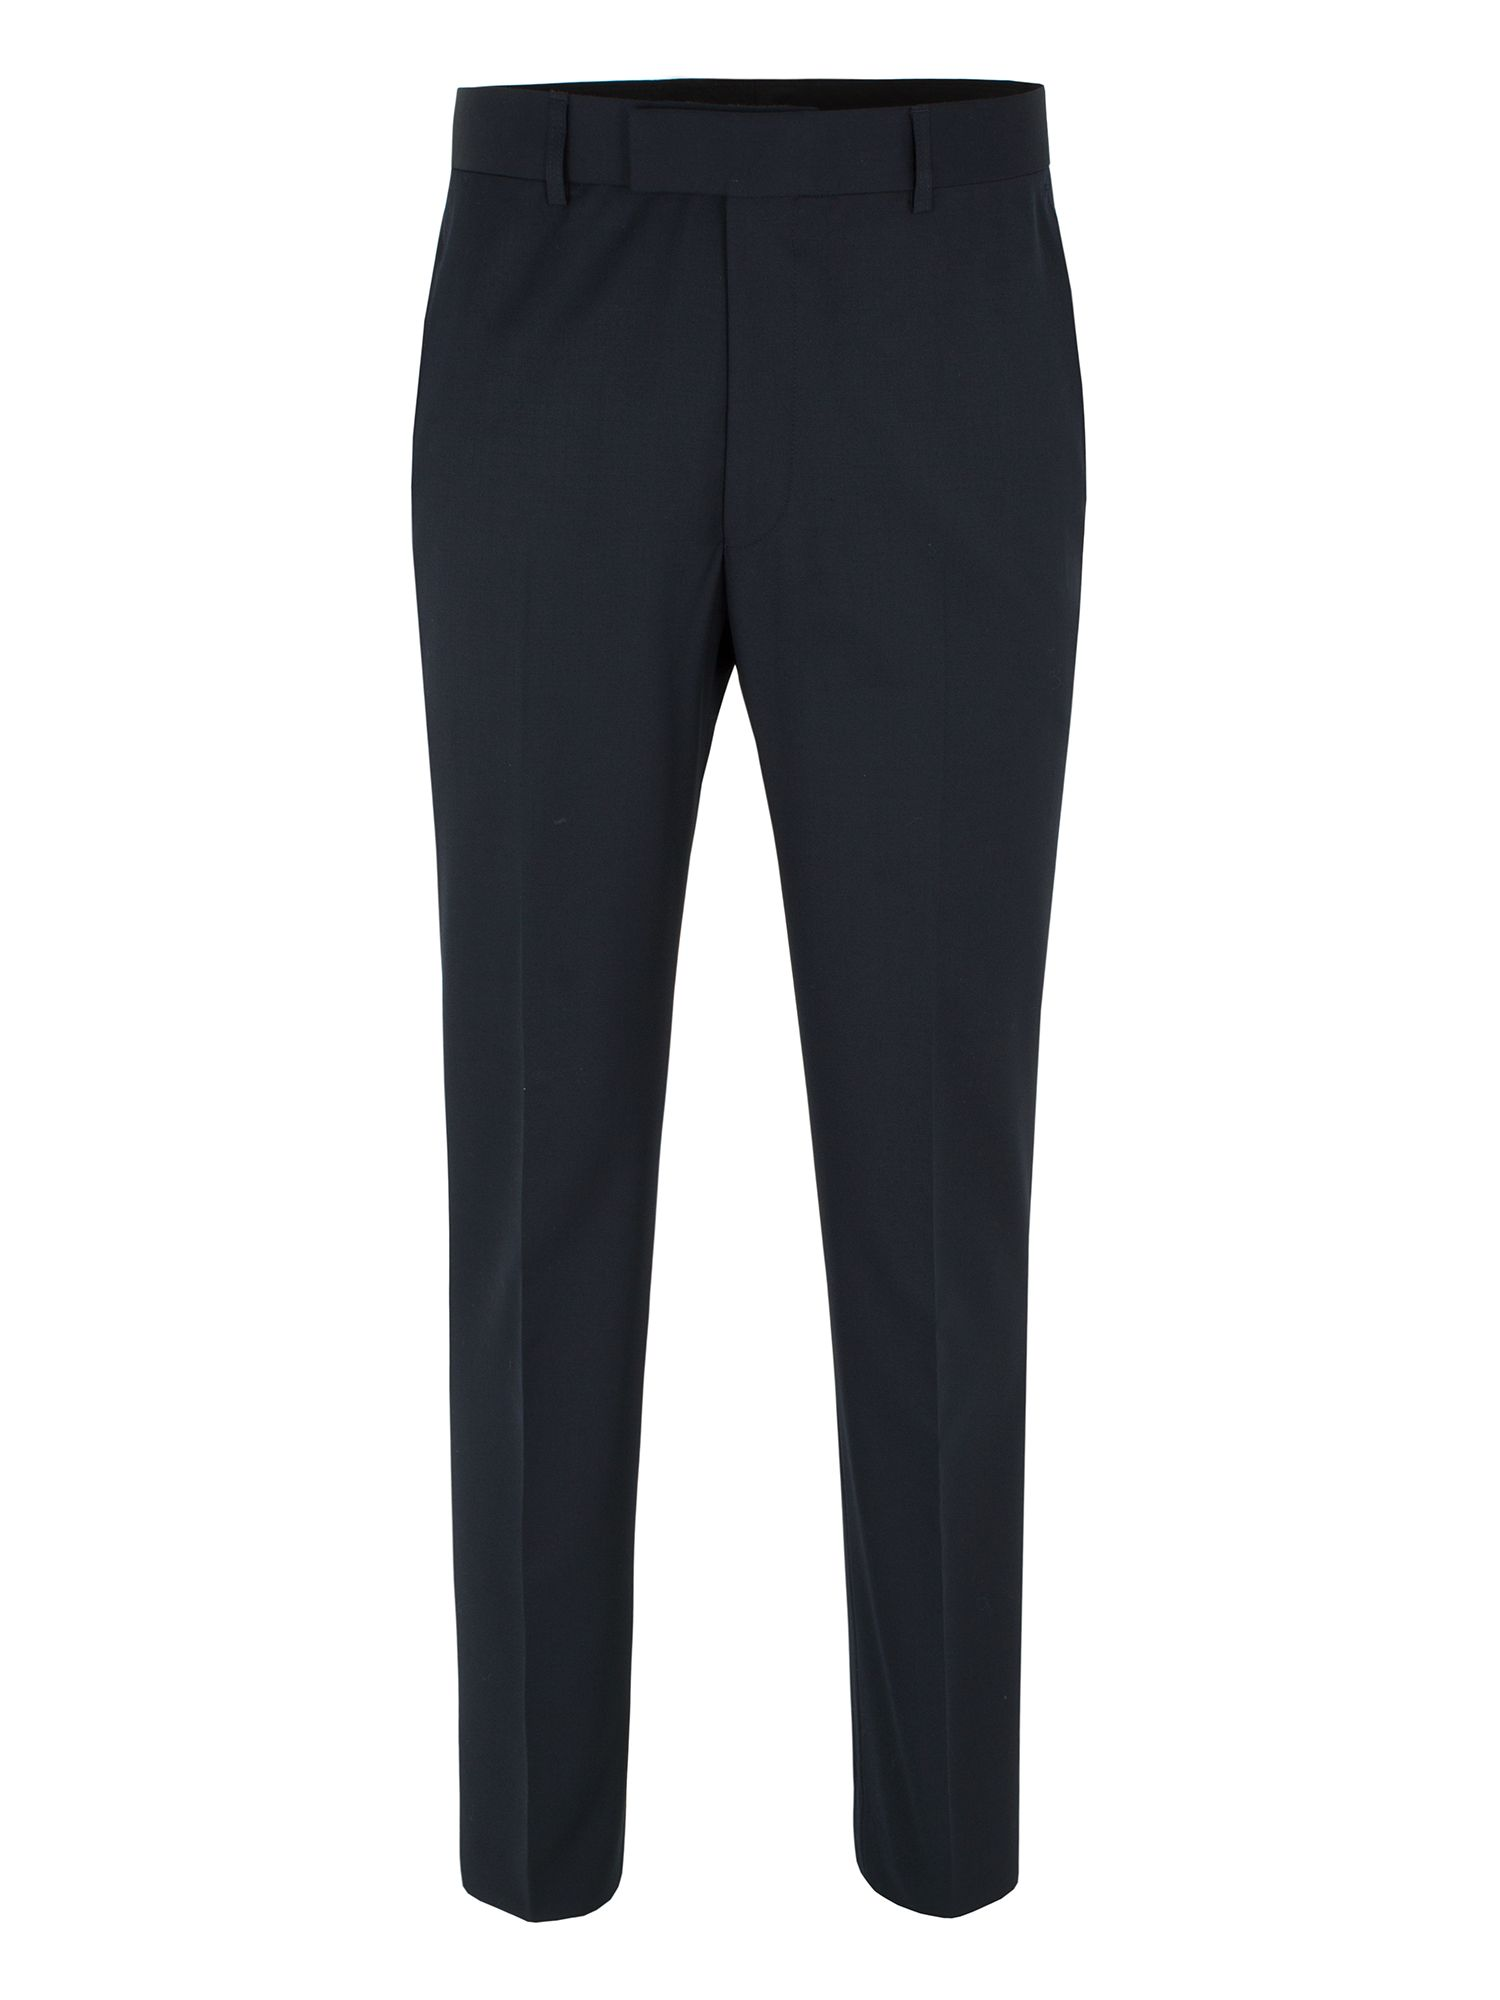 Navy plain twill trousers